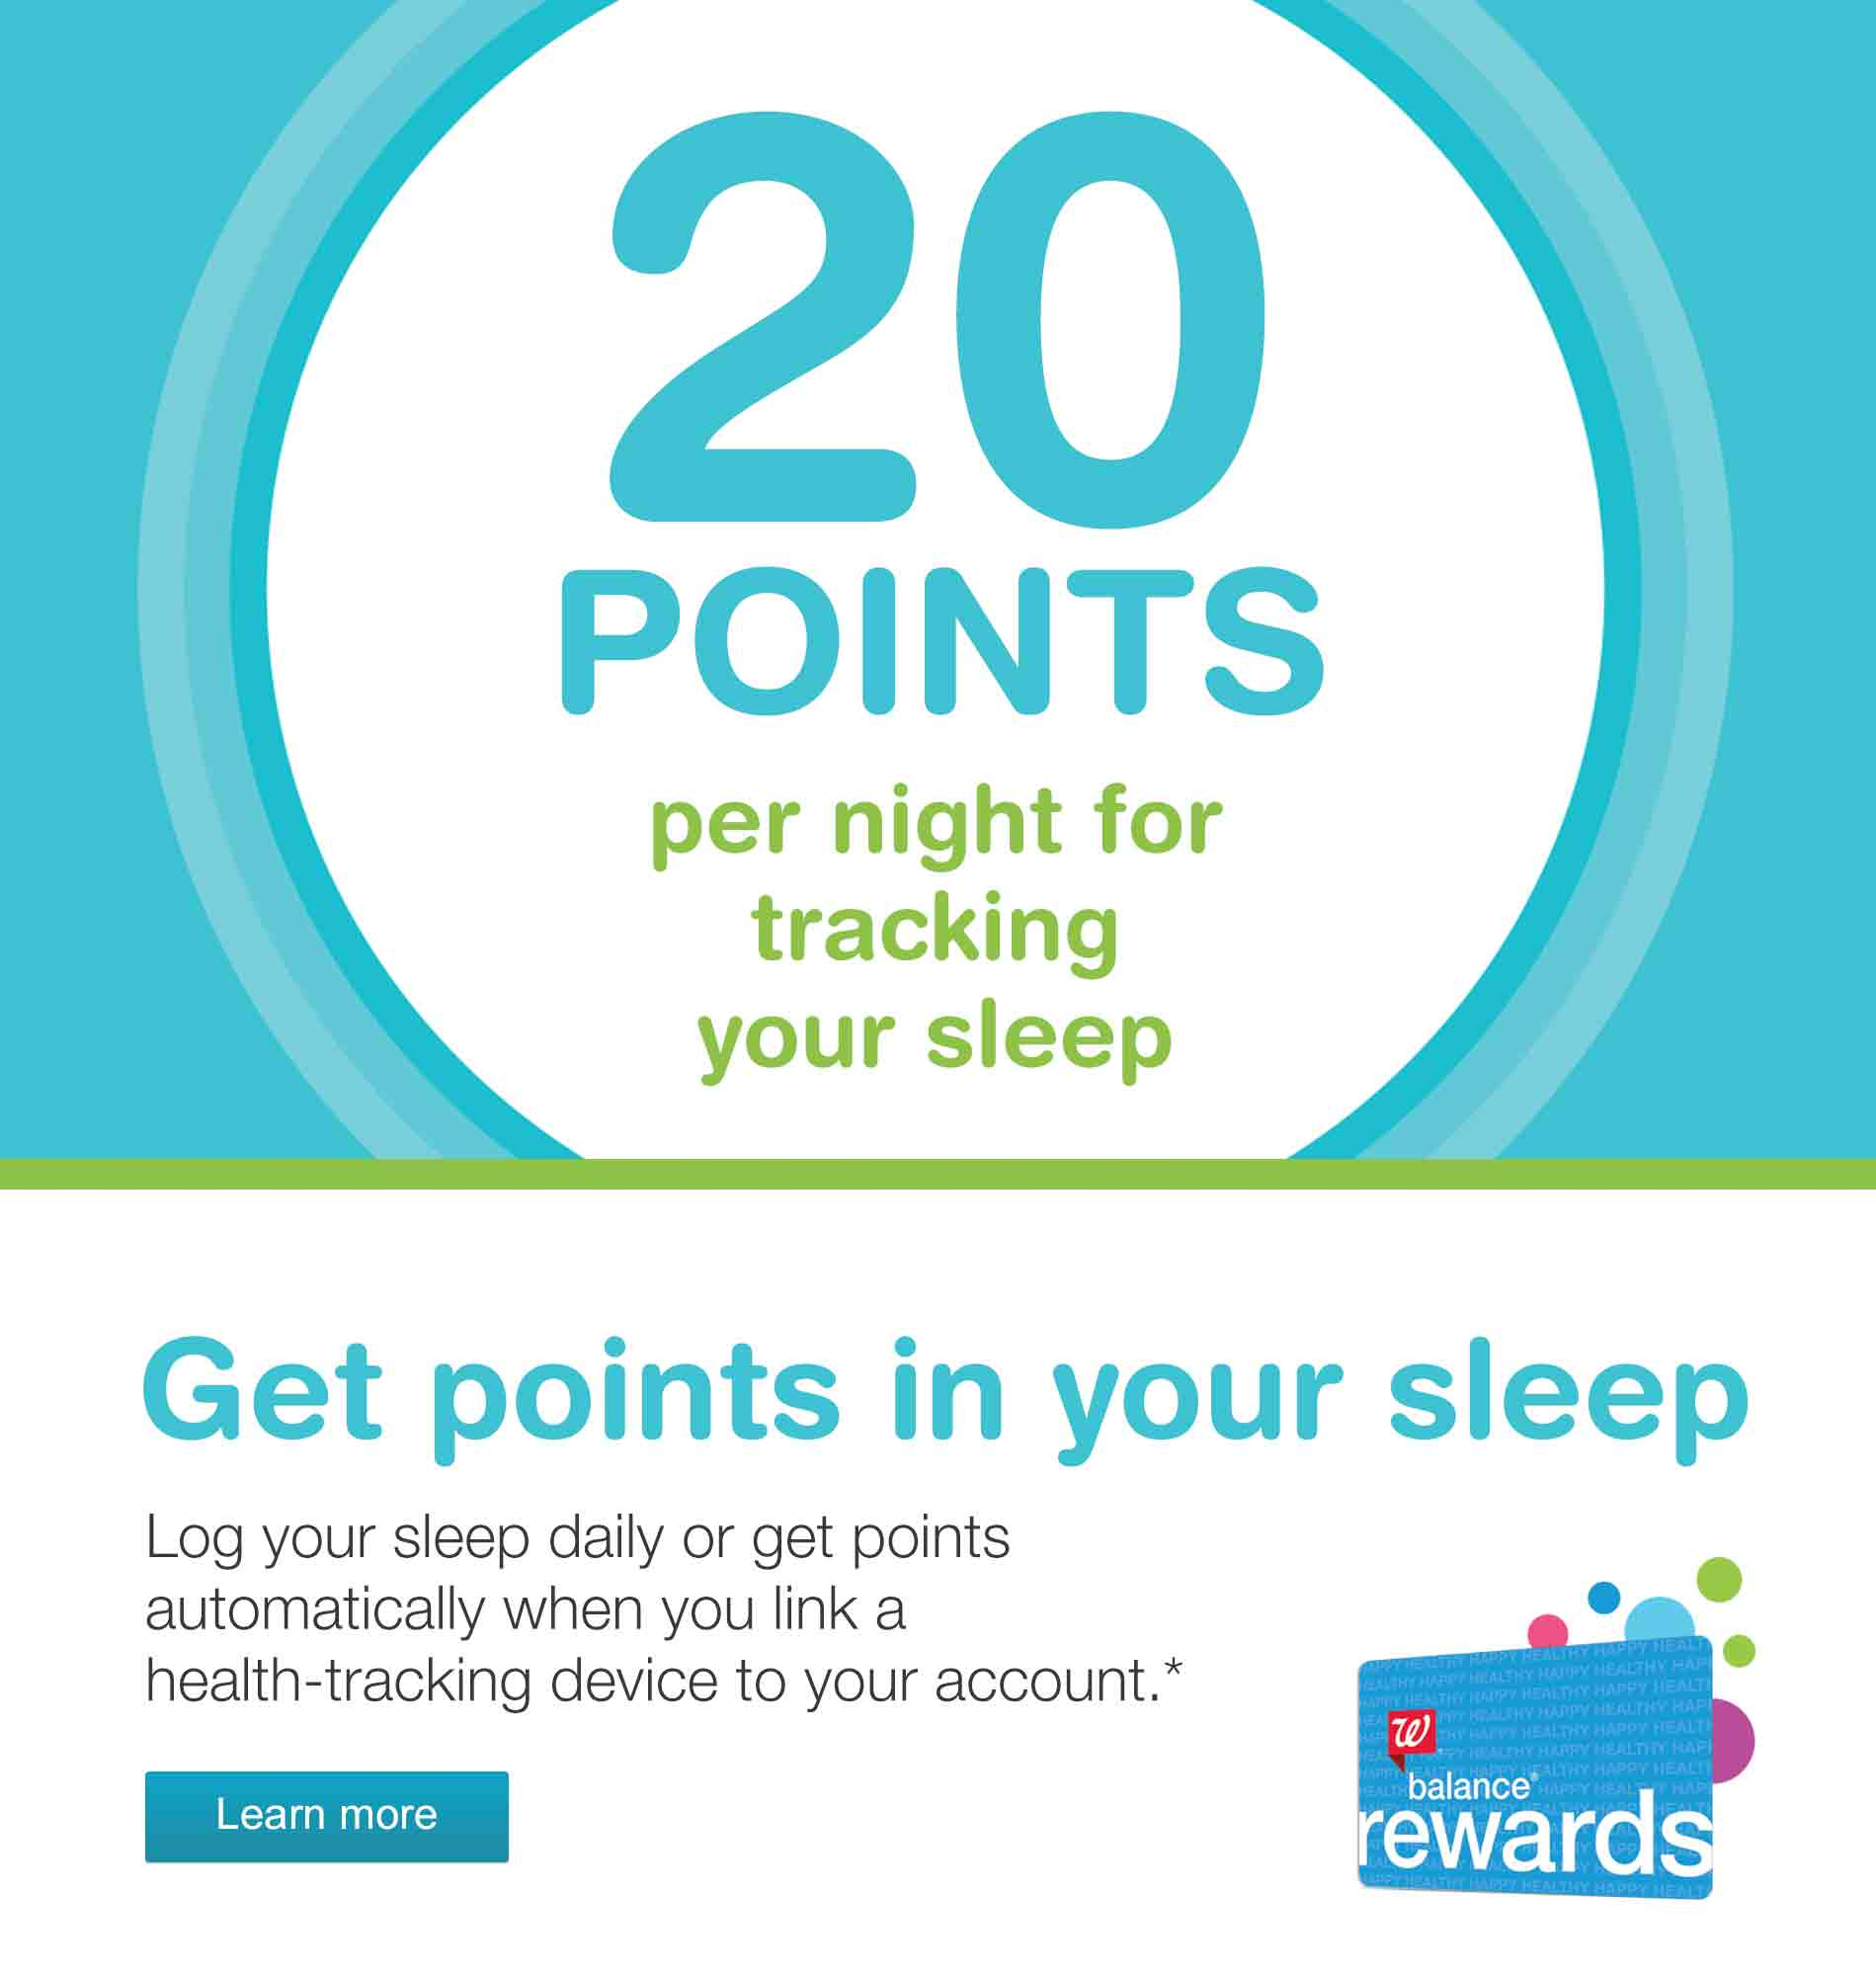 20 Points per night for tracking your sleep. Get points in your sleep. Log your sleep daily or get points automatically when you link a health-tracking device to your account.* Balance(R) Rewards. Learn more.